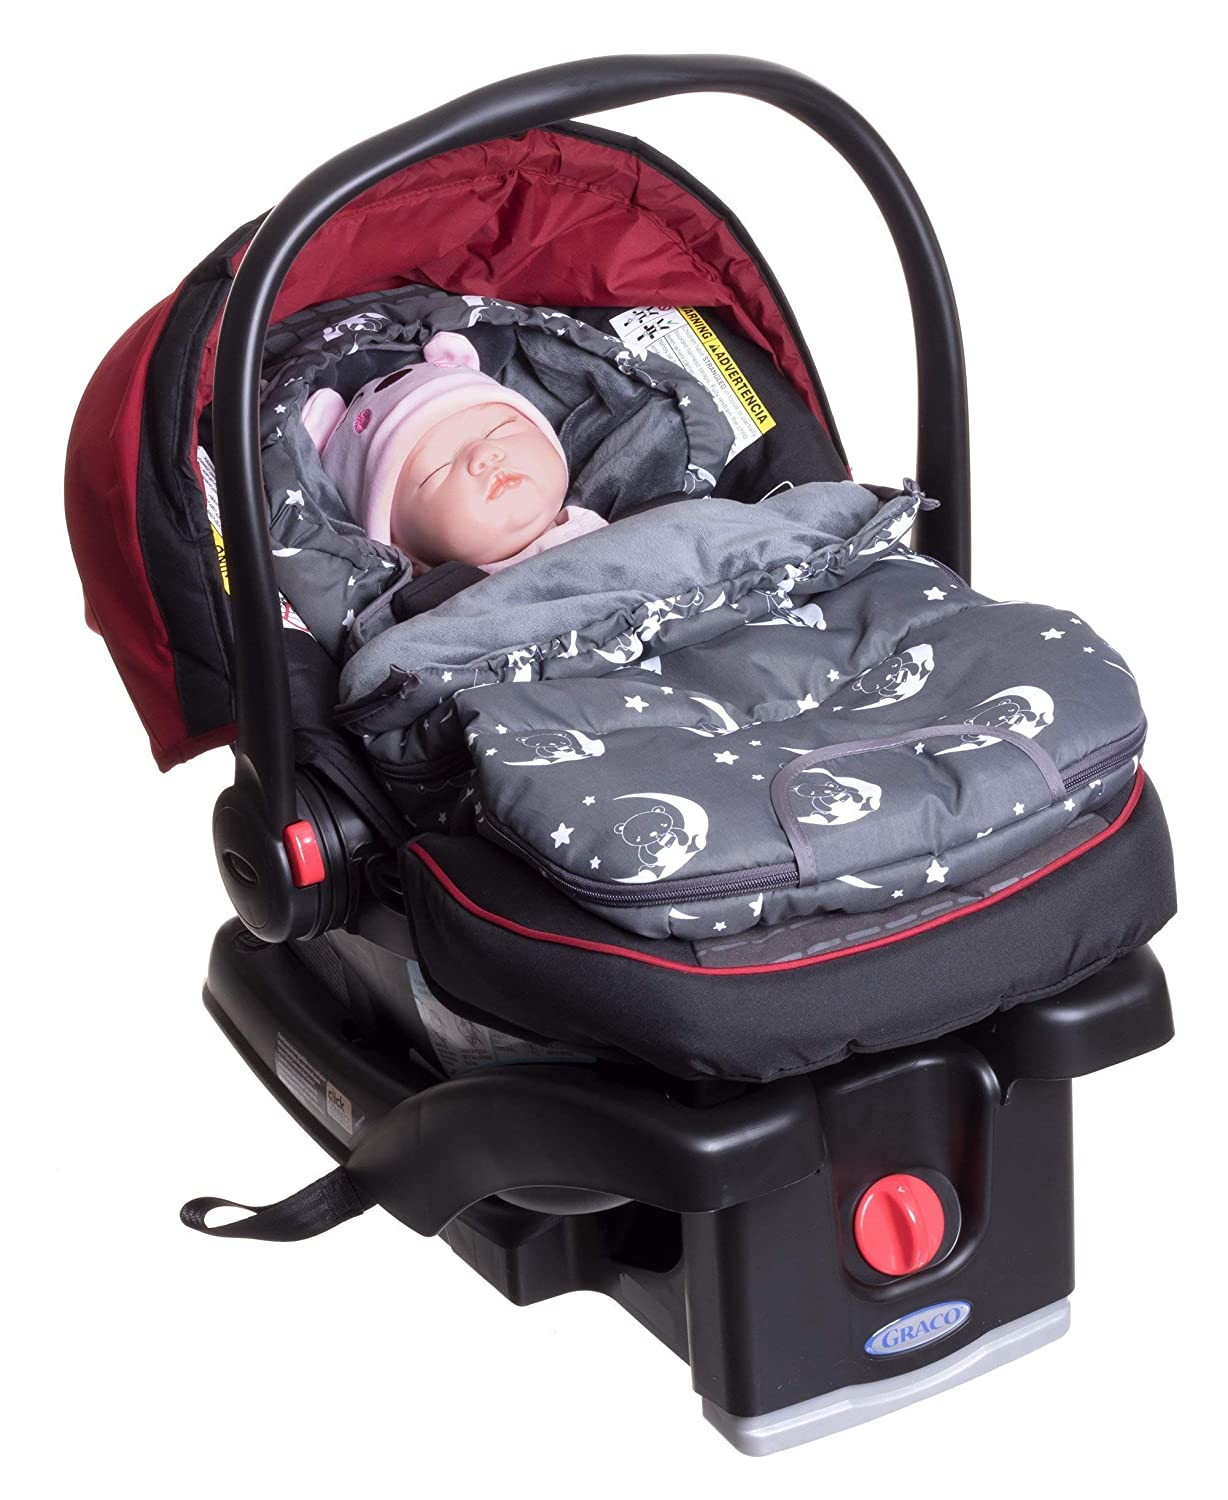 Infant Baby Newborn Footmuff Bunting Bag Sleep Sack for Carriers, Strollers, Joggers and Buggies